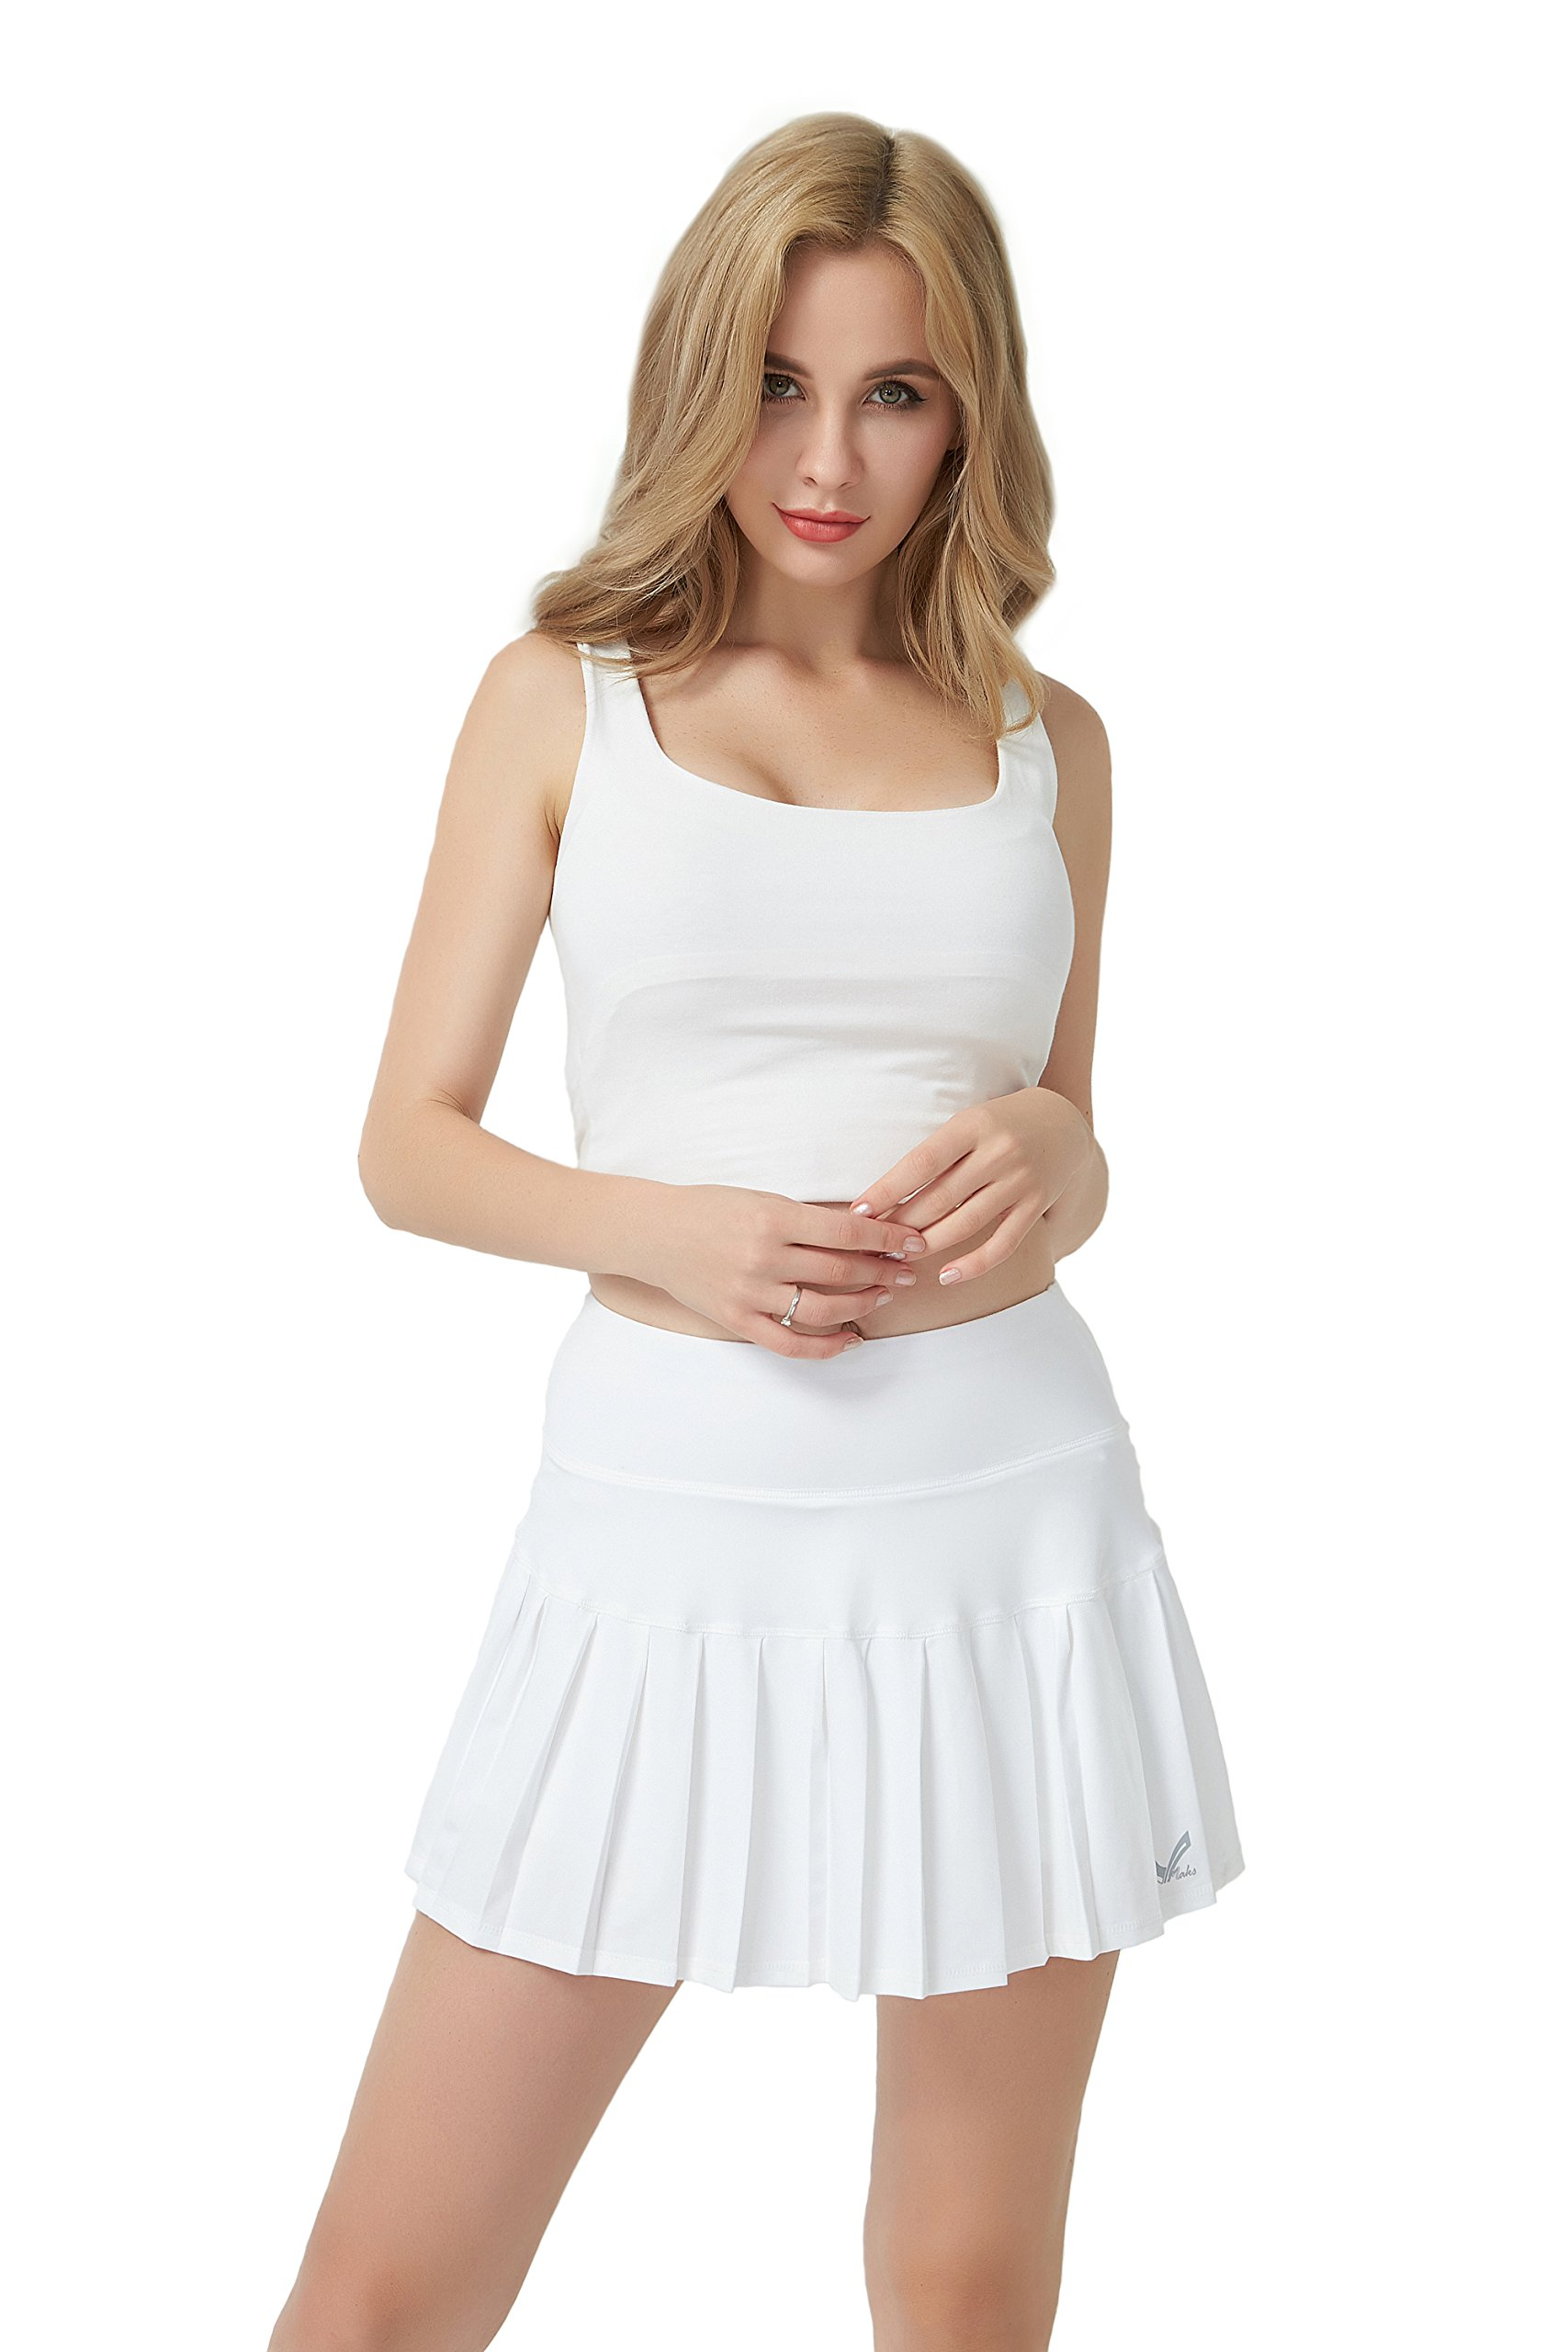 Maks Womens Athletic Cycling Running Pleated High Waist Tennis Skort Skirt (White, L)